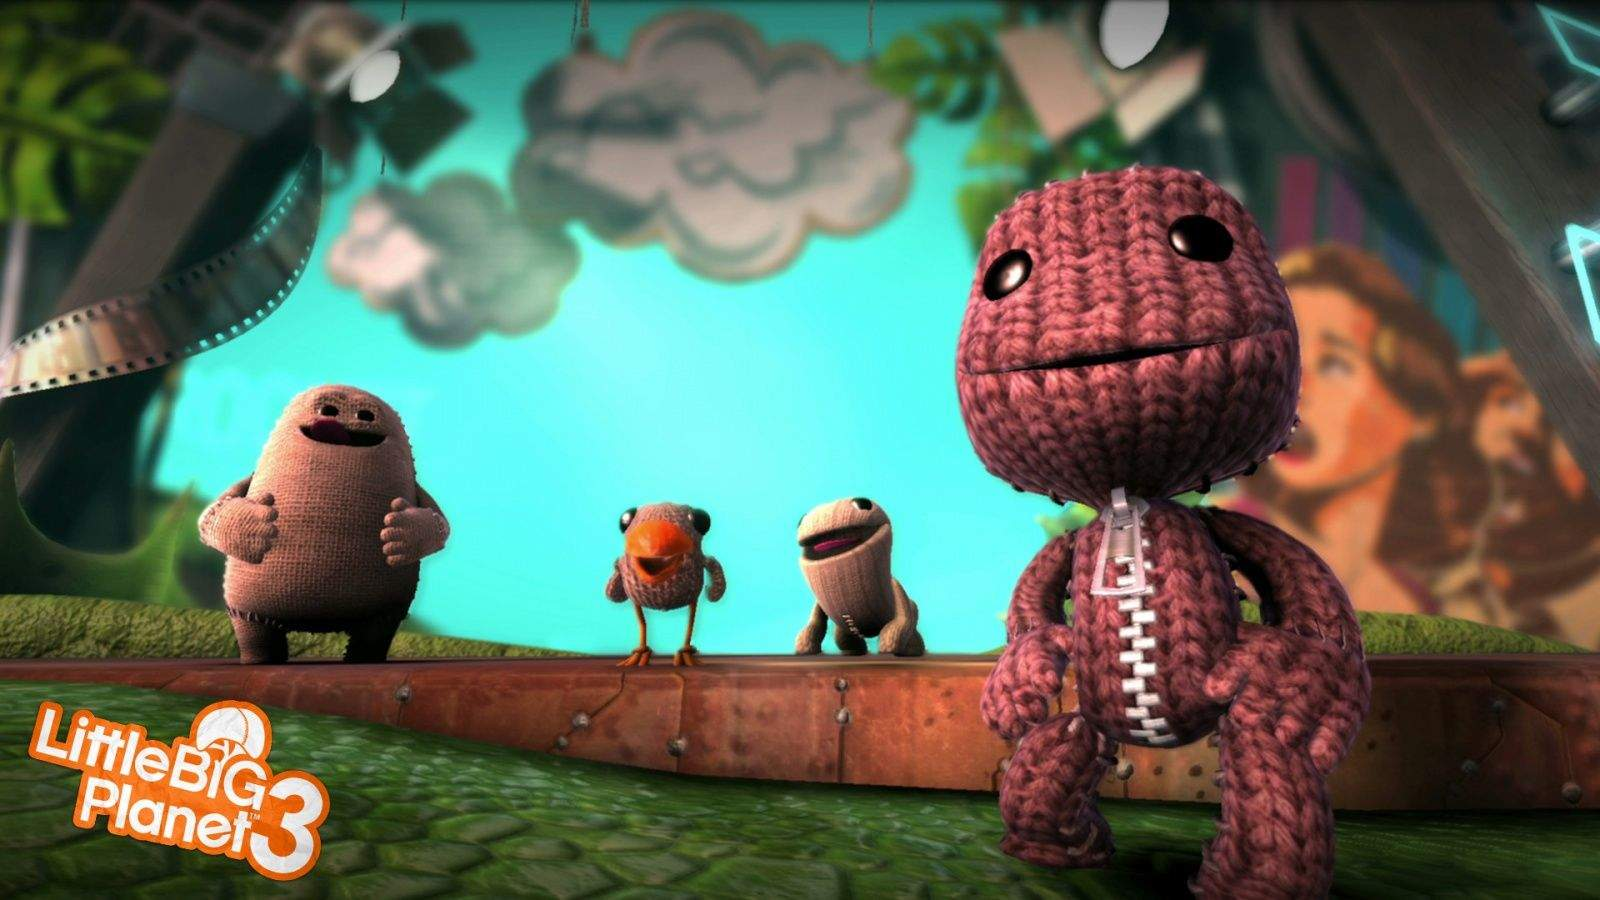 LittleBigPlanet 3 is made of smiles. Photo: Sony